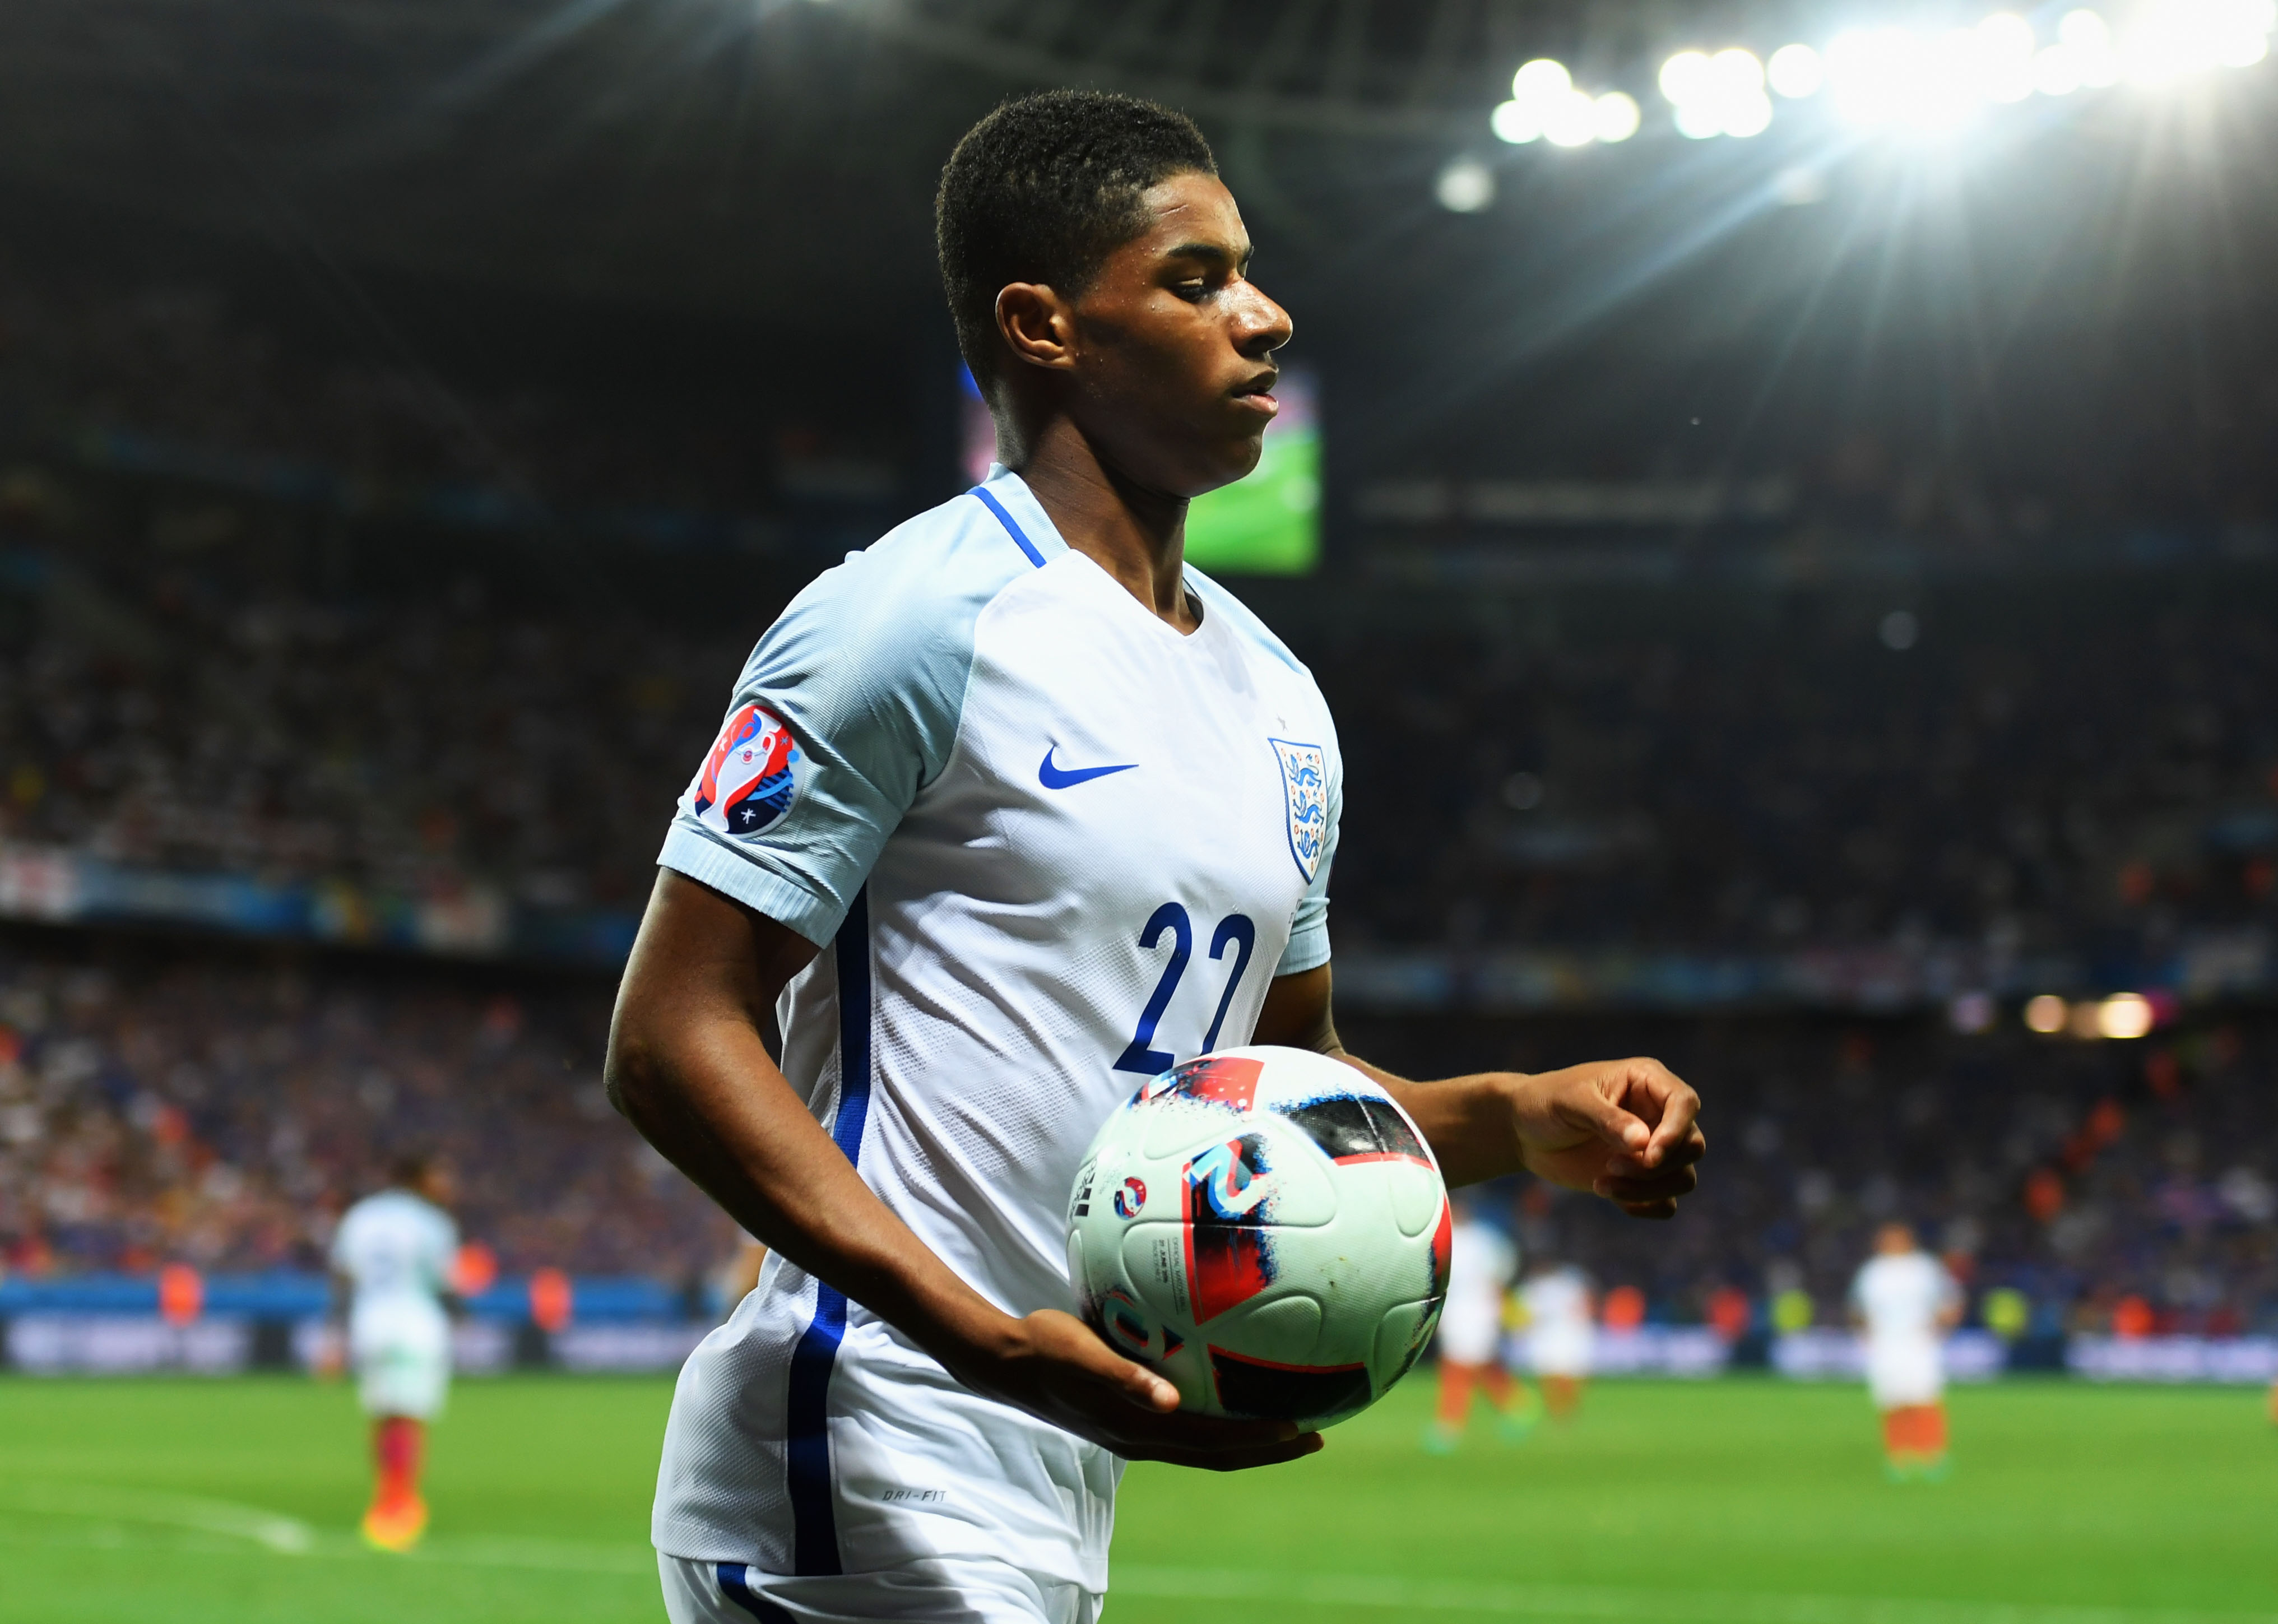 England 1 Iceland 2: Why Manchester United's Marcus Rashford was England's only bright spot